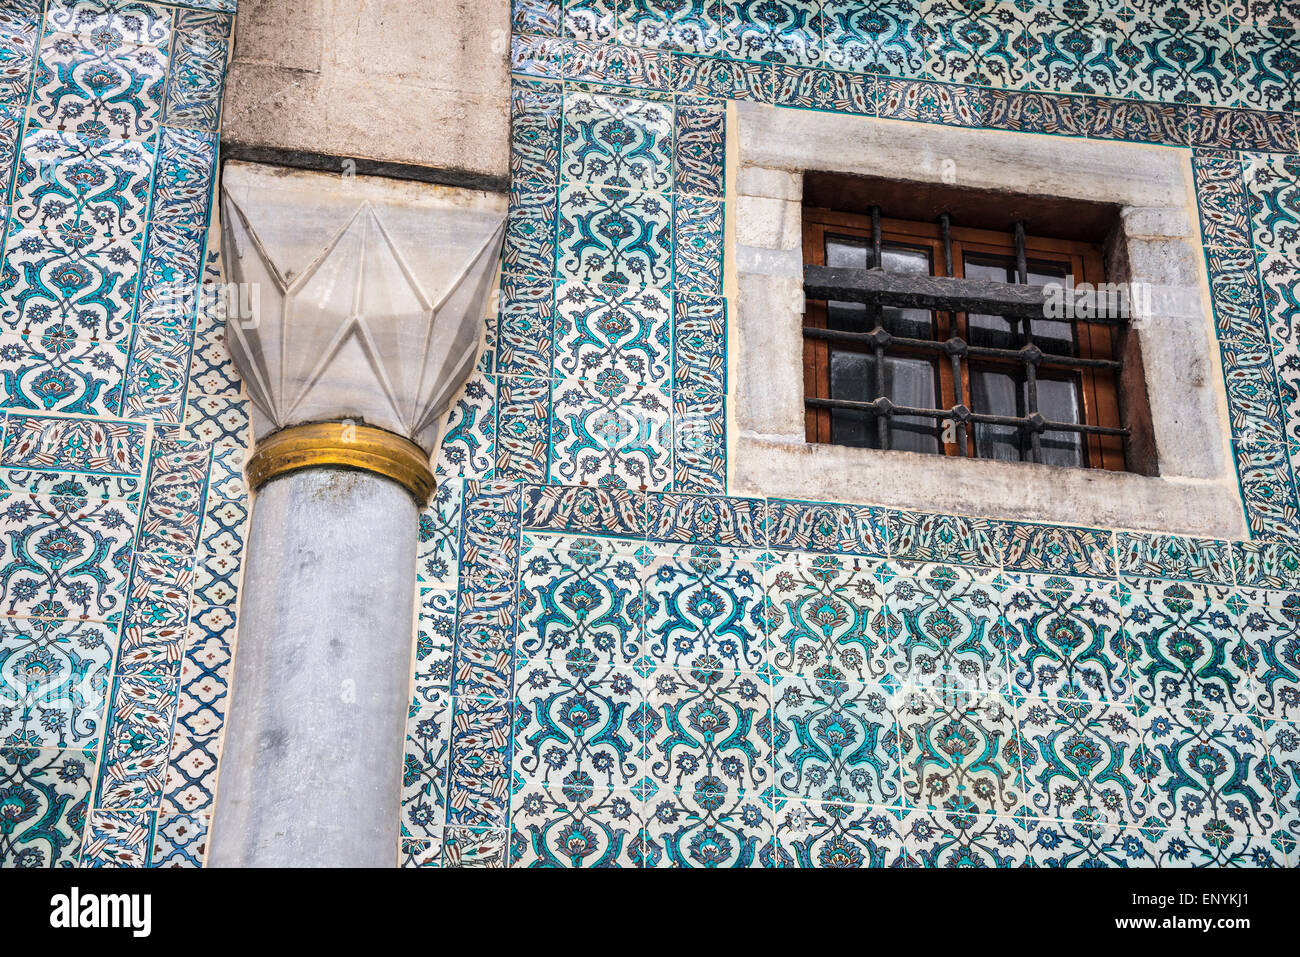 17th cen. Iznik tiles decorating a wall in The Courtyard of the ...